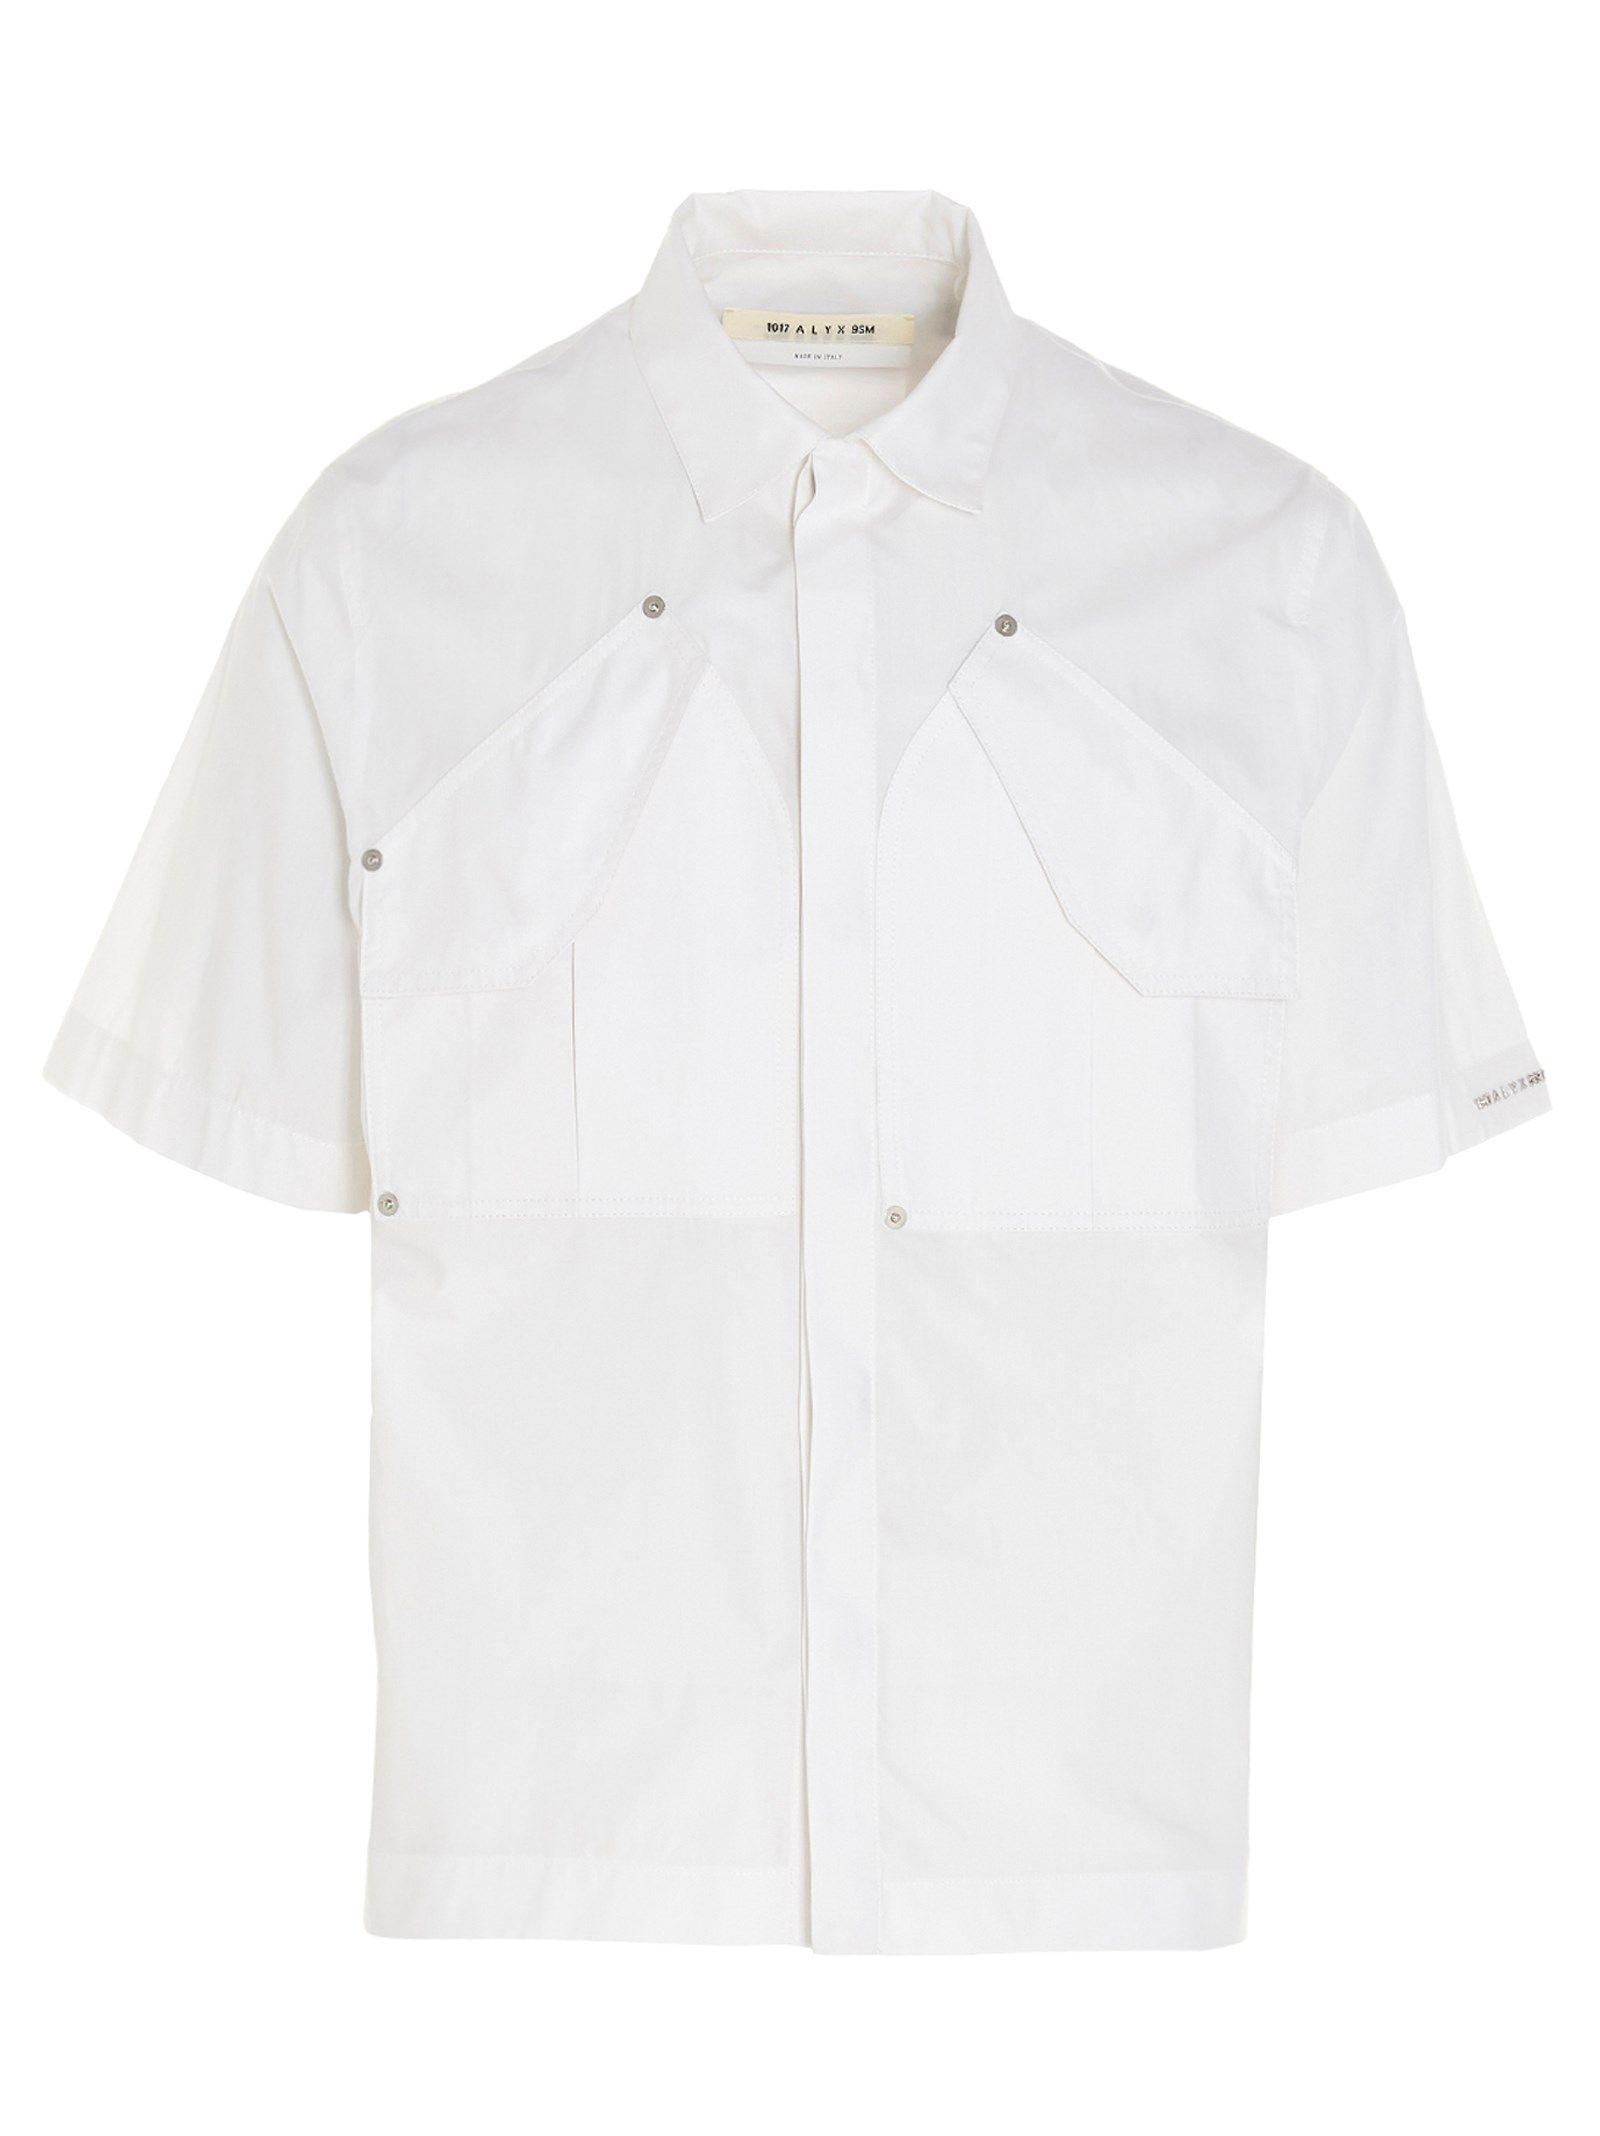 Alyx Shirts ALYX MEN'S AAUSH0102FA02WTH0001 WHITE OTHER MATERIALS SHIRT